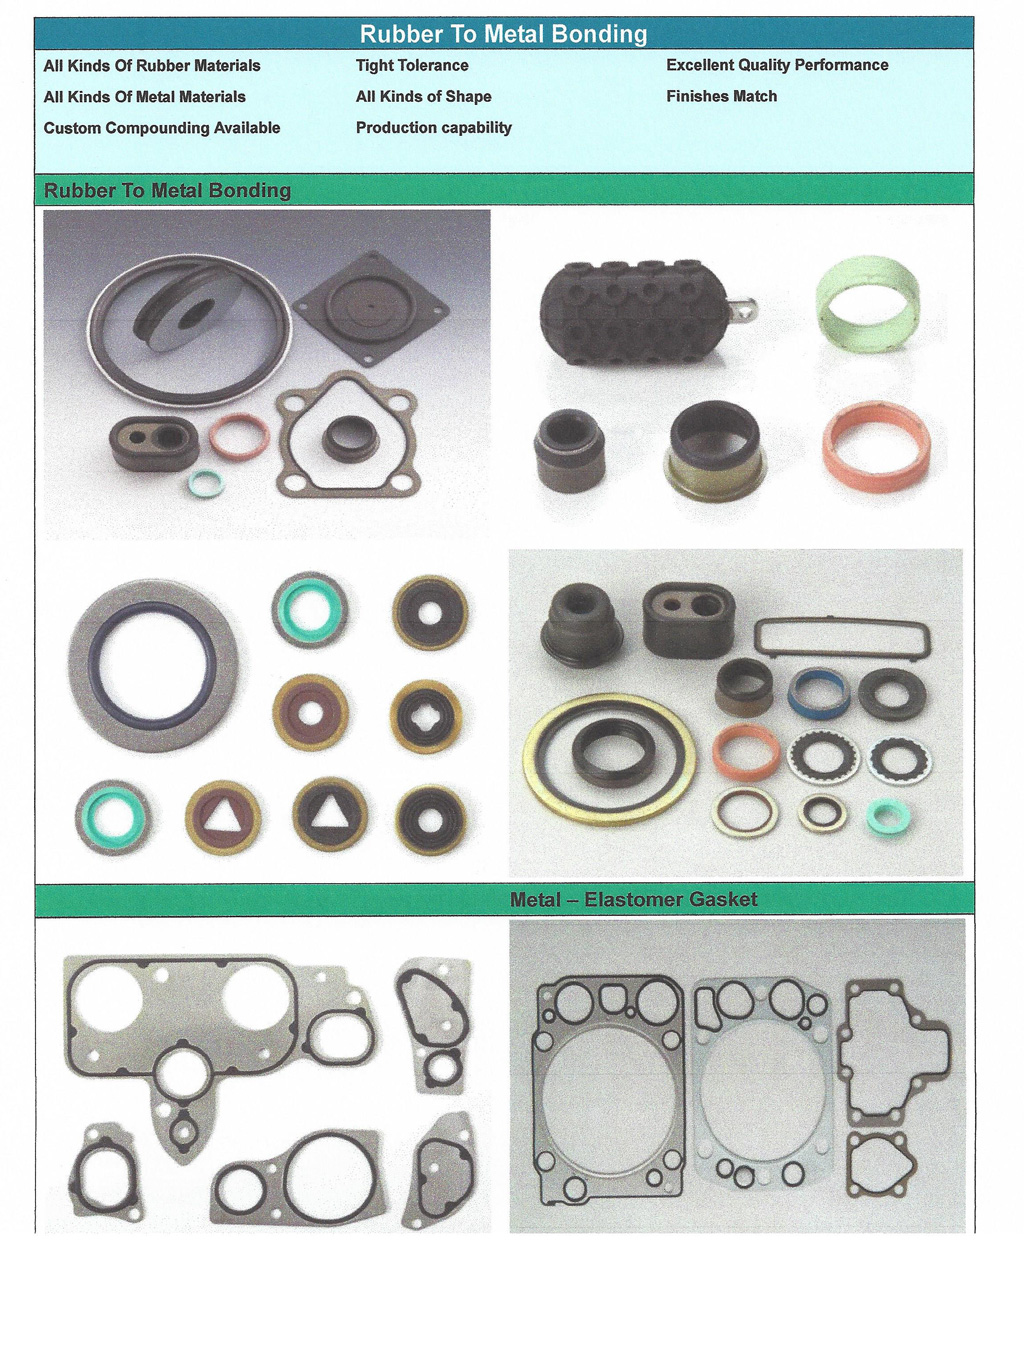 Custom Molded Parts and O-Rings Midwest Gasket Corp.